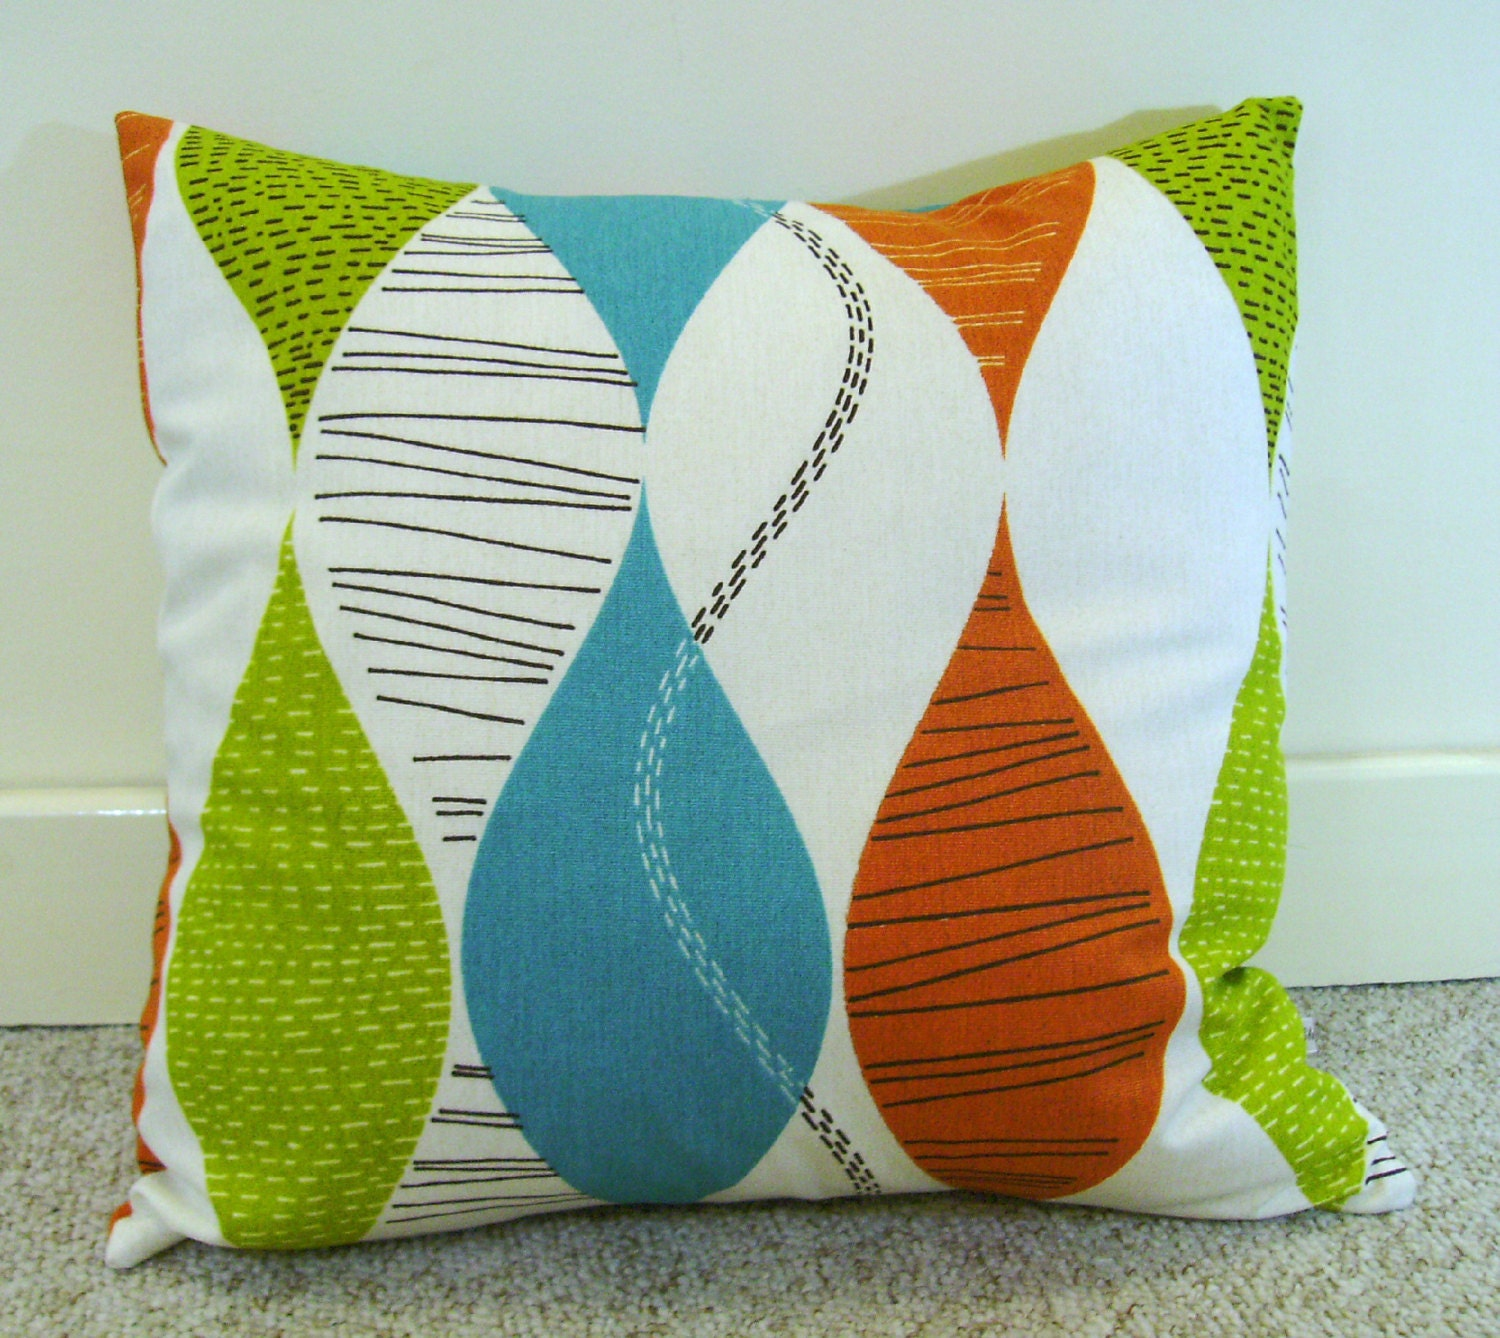 Modern Pillows Etsy : Modern pillow cover retro pillow decorative pillows by chezlele